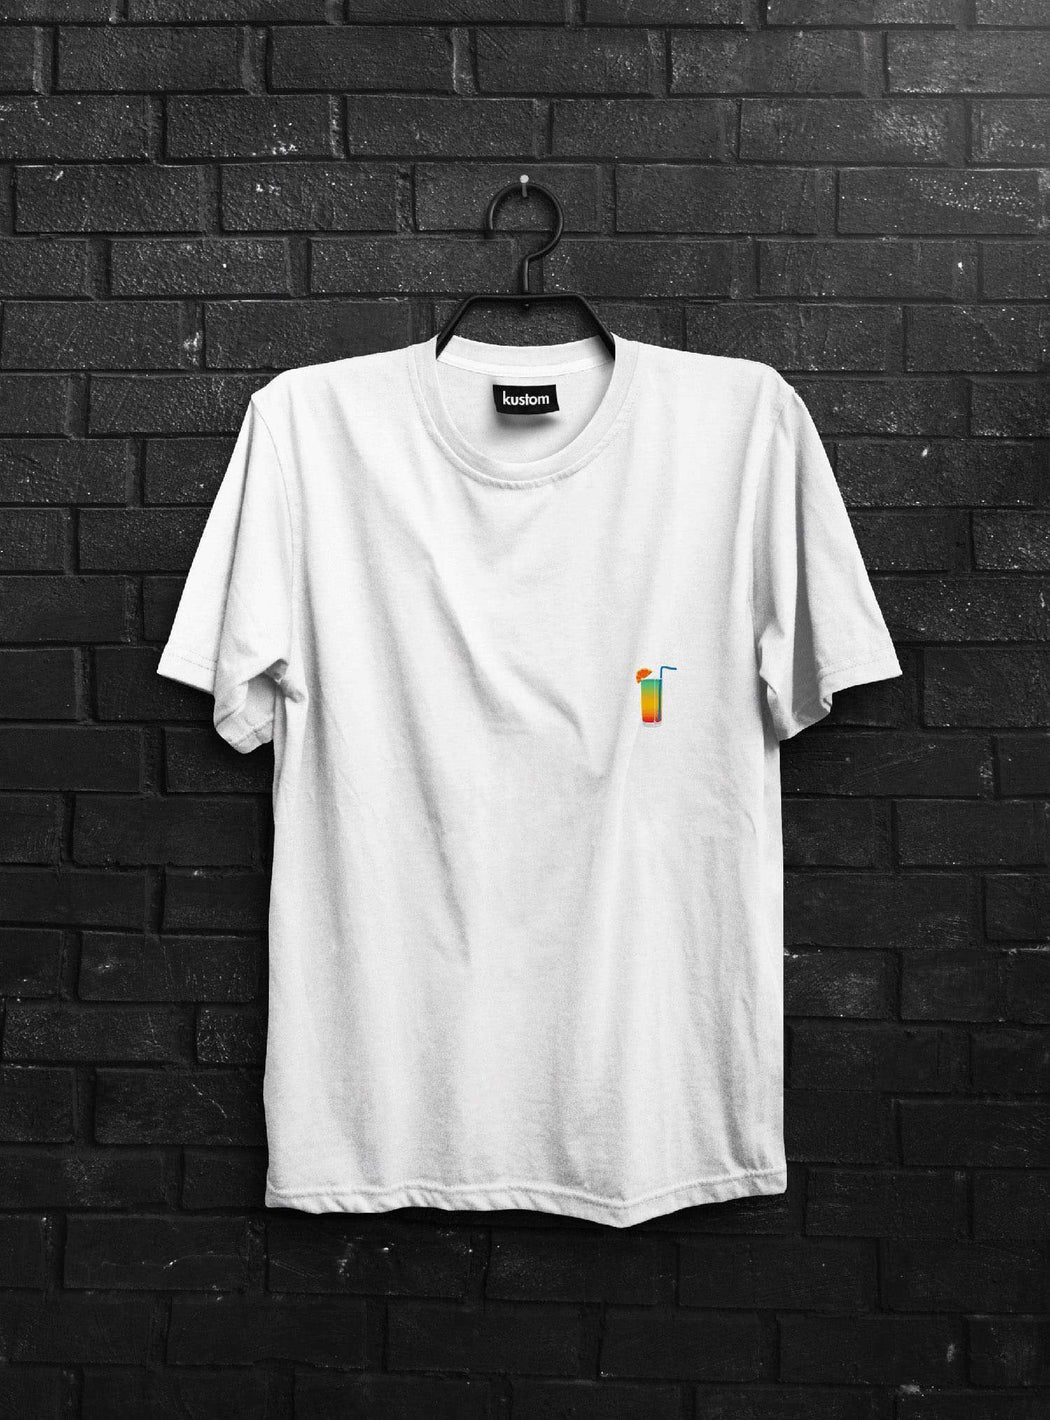 Cocktail Tee - Kustom: Tees Factory